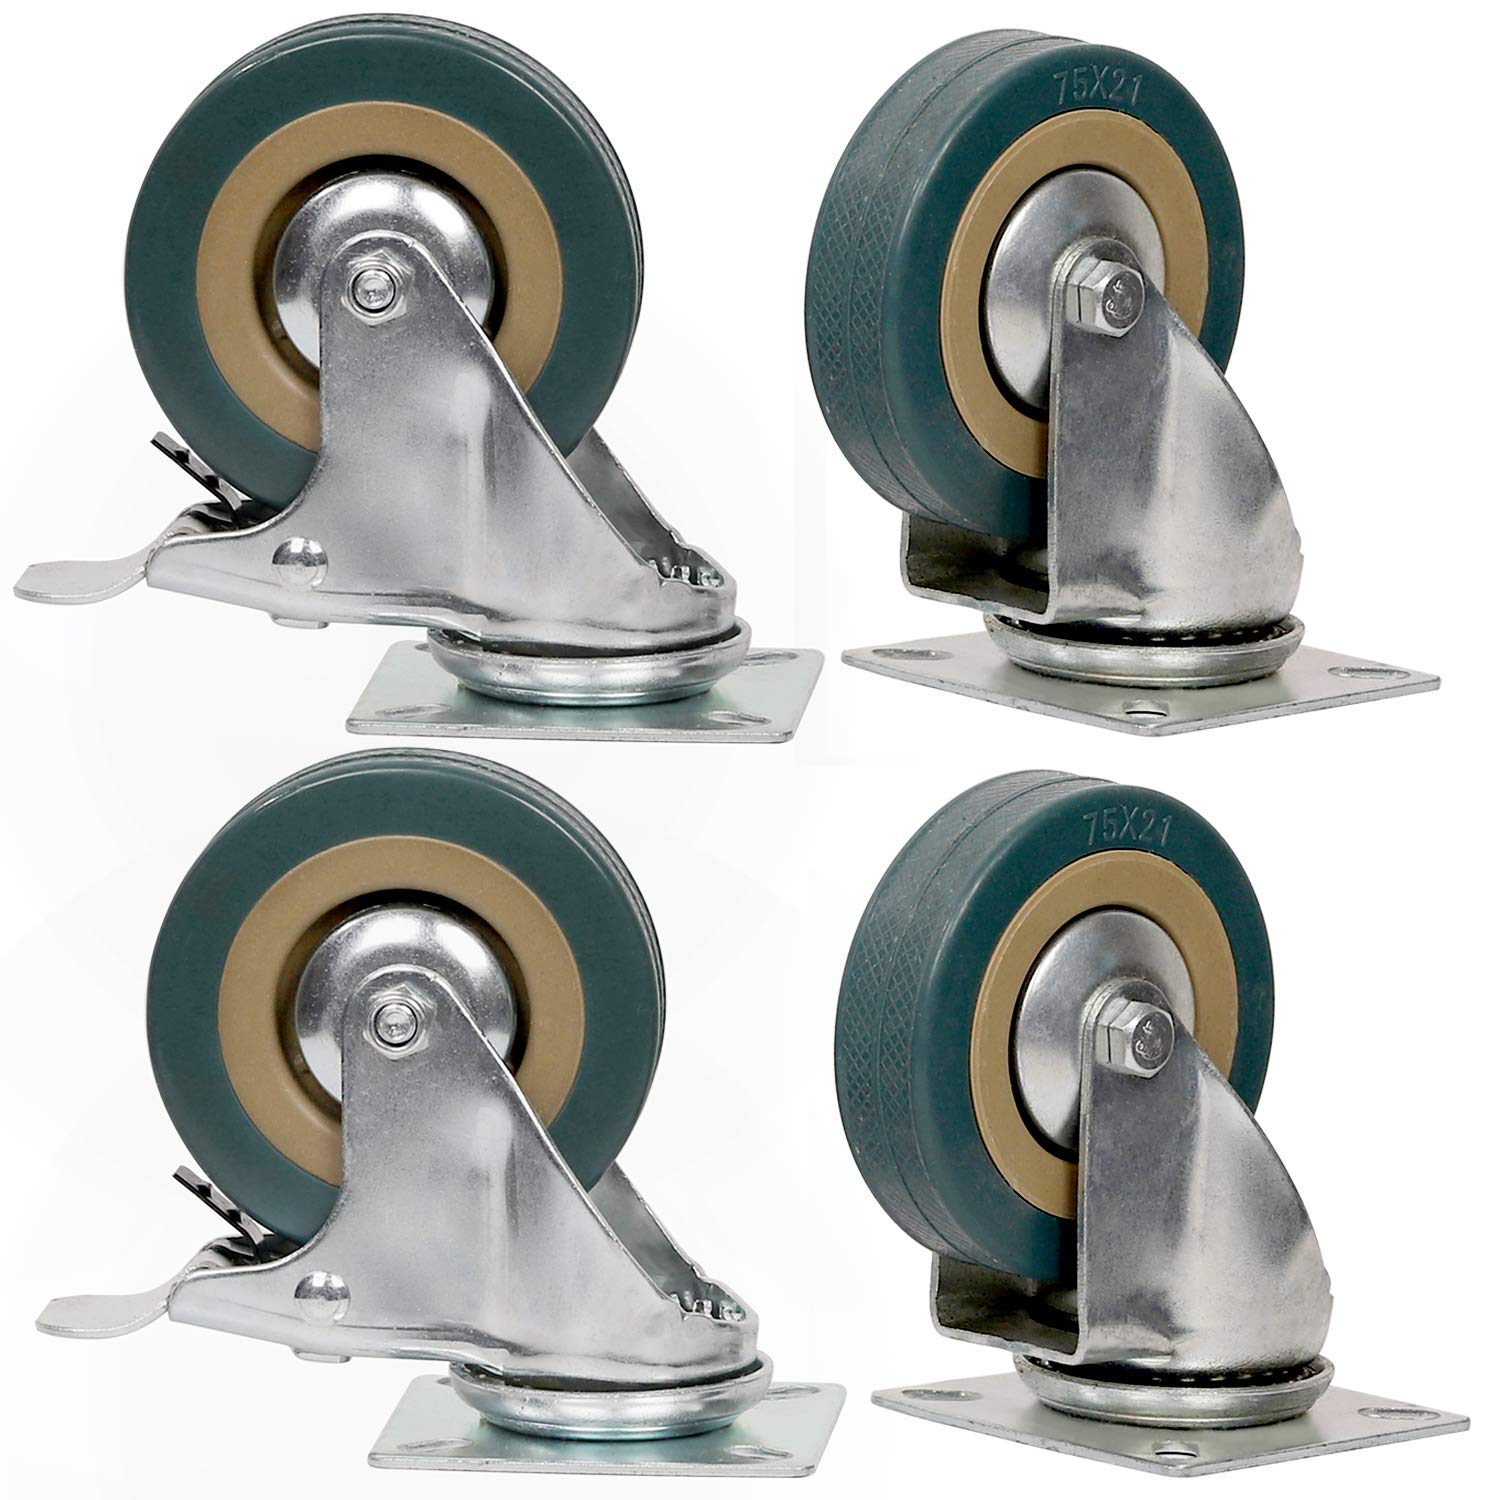 4 Packs 3 Inches (2 with Brakes, 2 Without),360 Degree Swivel Caster Wheels Set,KINJOEK Polyvinyl Chloride Caster Wheels with Brakes for Carts, Furniture, Workbench, Trolley, 440lb Total Capacity,Gray